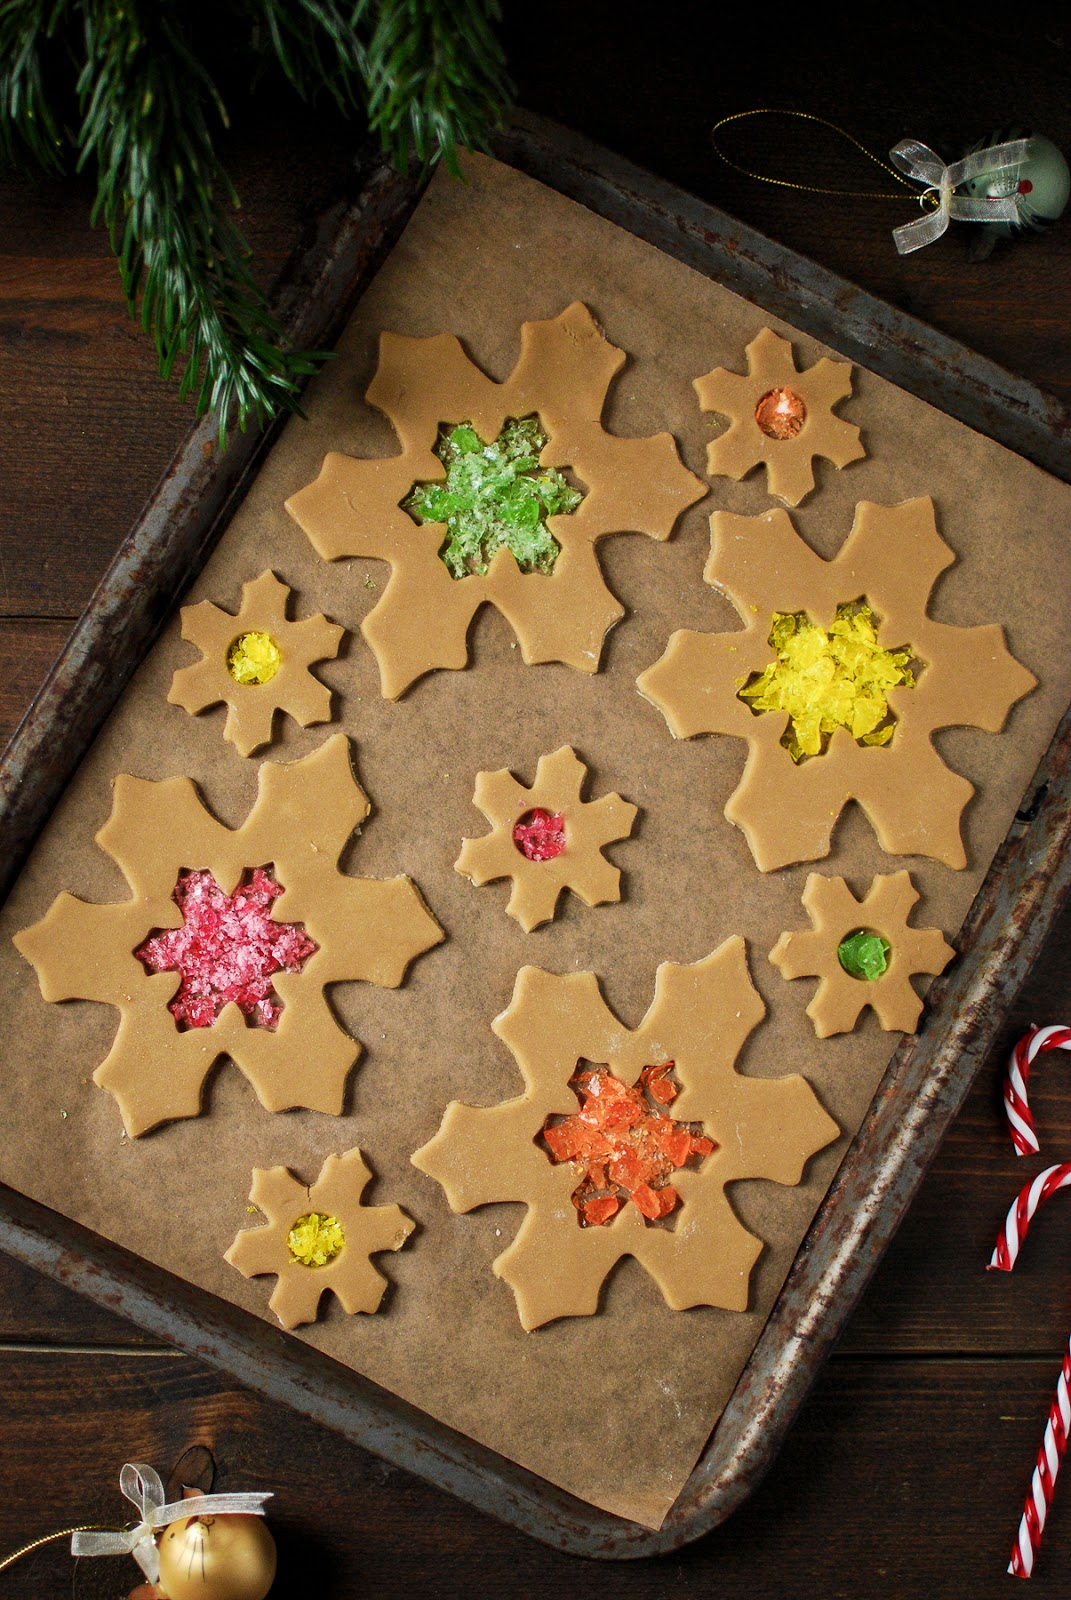 Stained glass cookies perfect for hanging from your Christmas tree